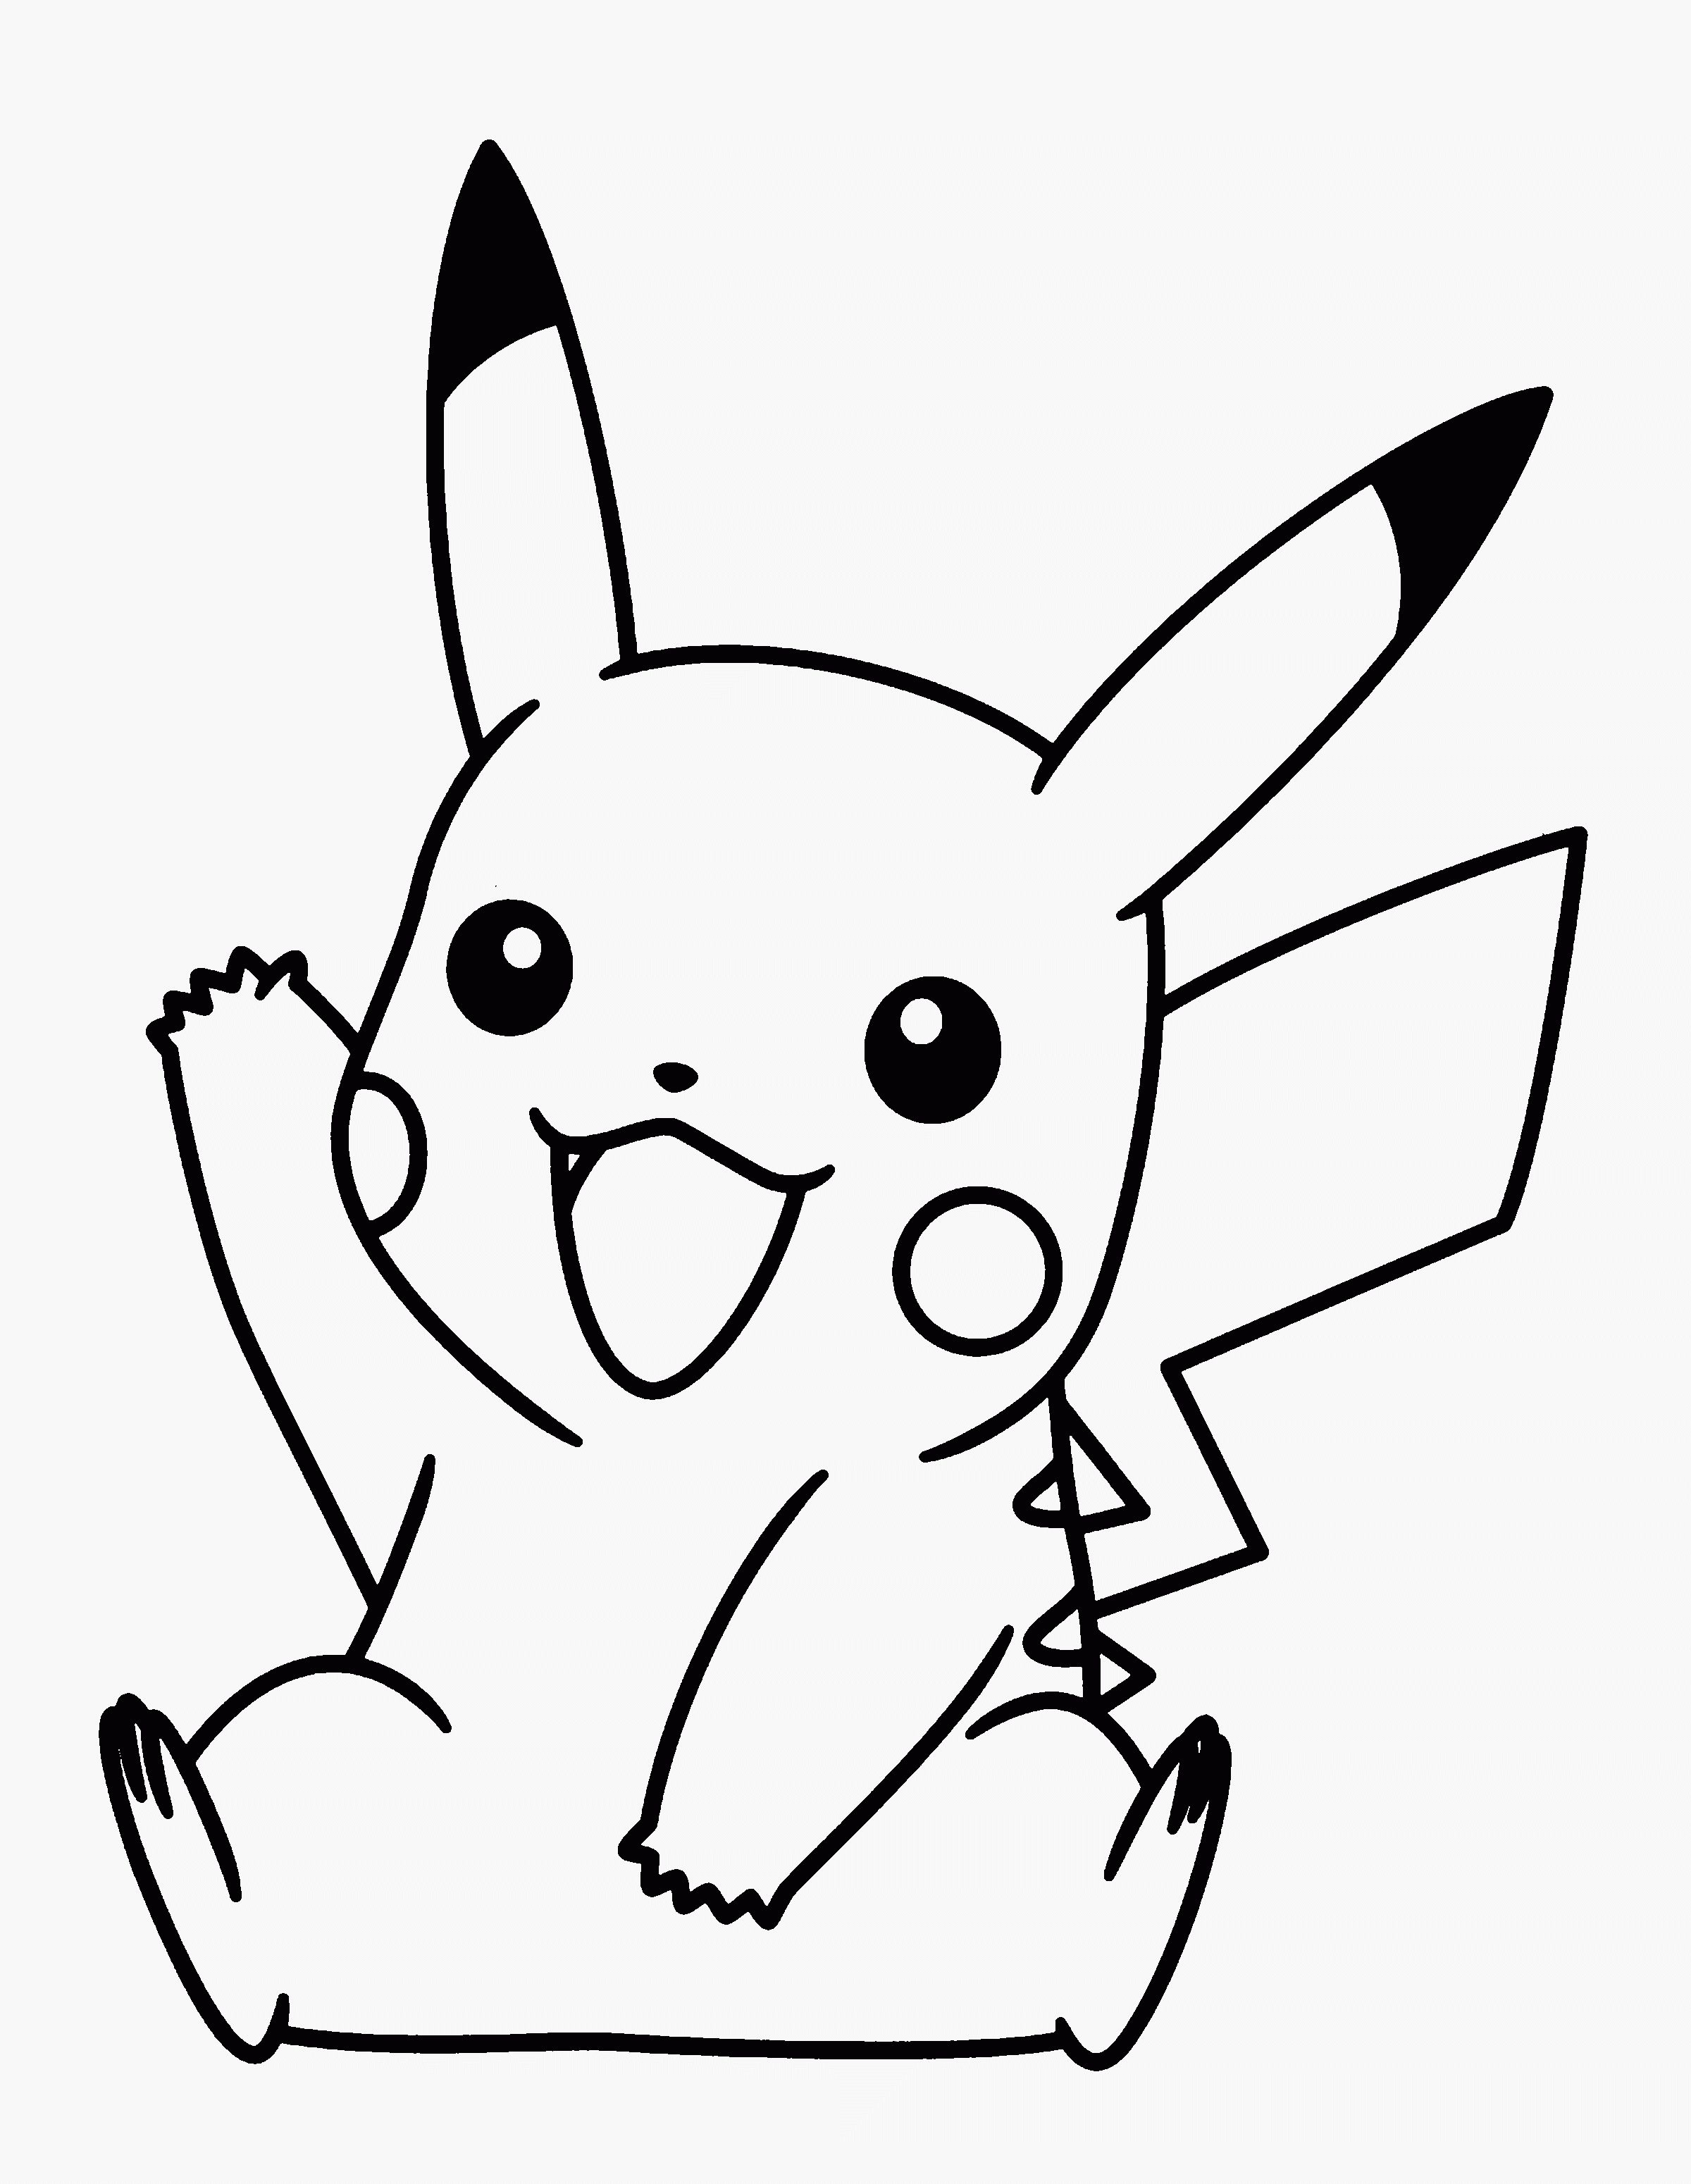 Cool Coloriage Pokemon Pikachu Coloriage Pokemon Coloriage